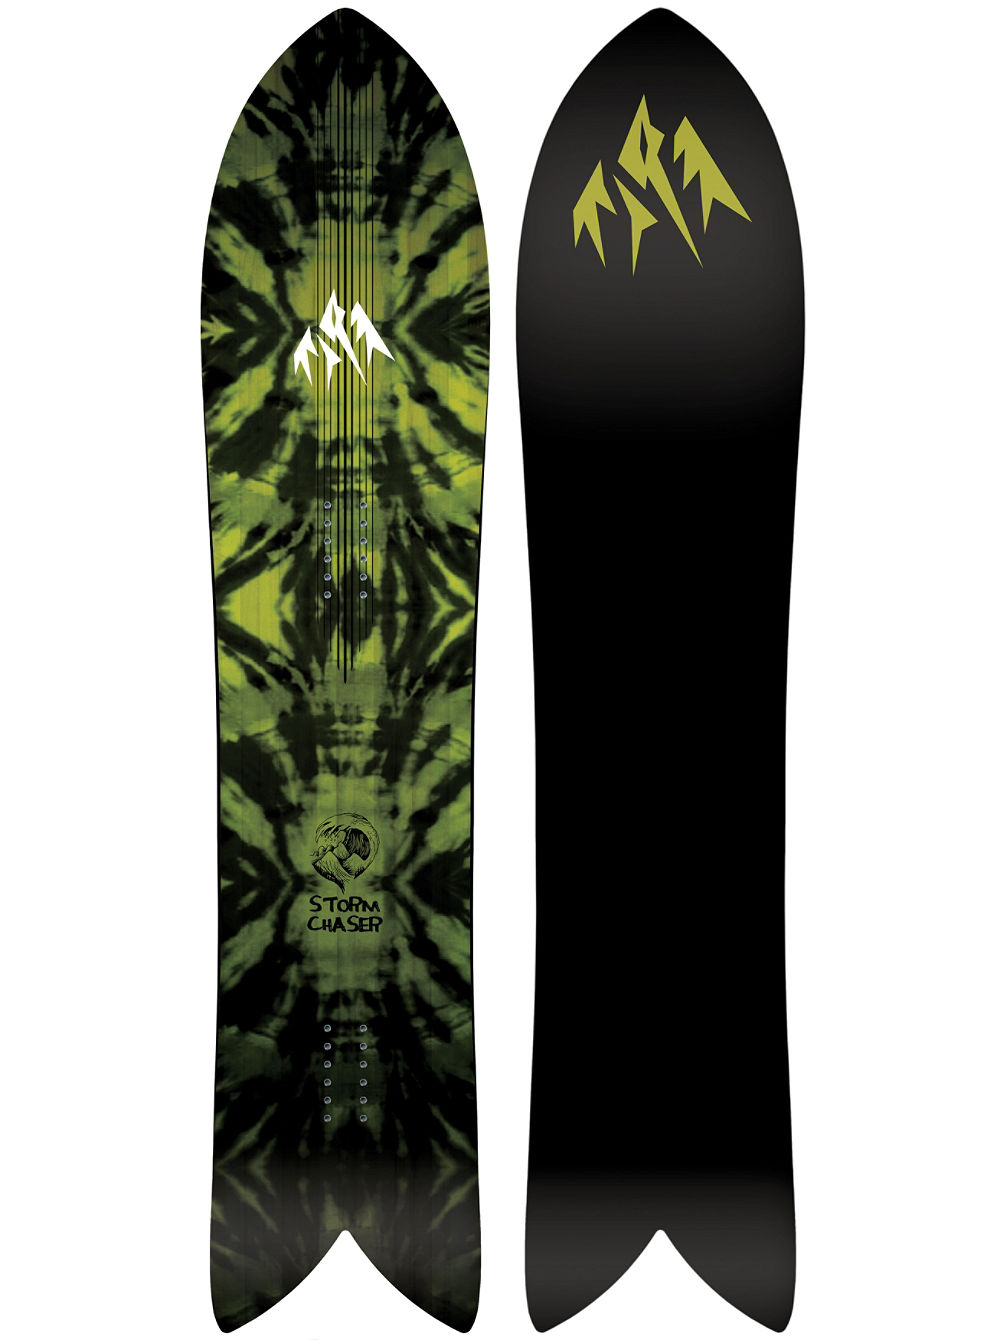 Storm Chaser 160 2019 Snowboard